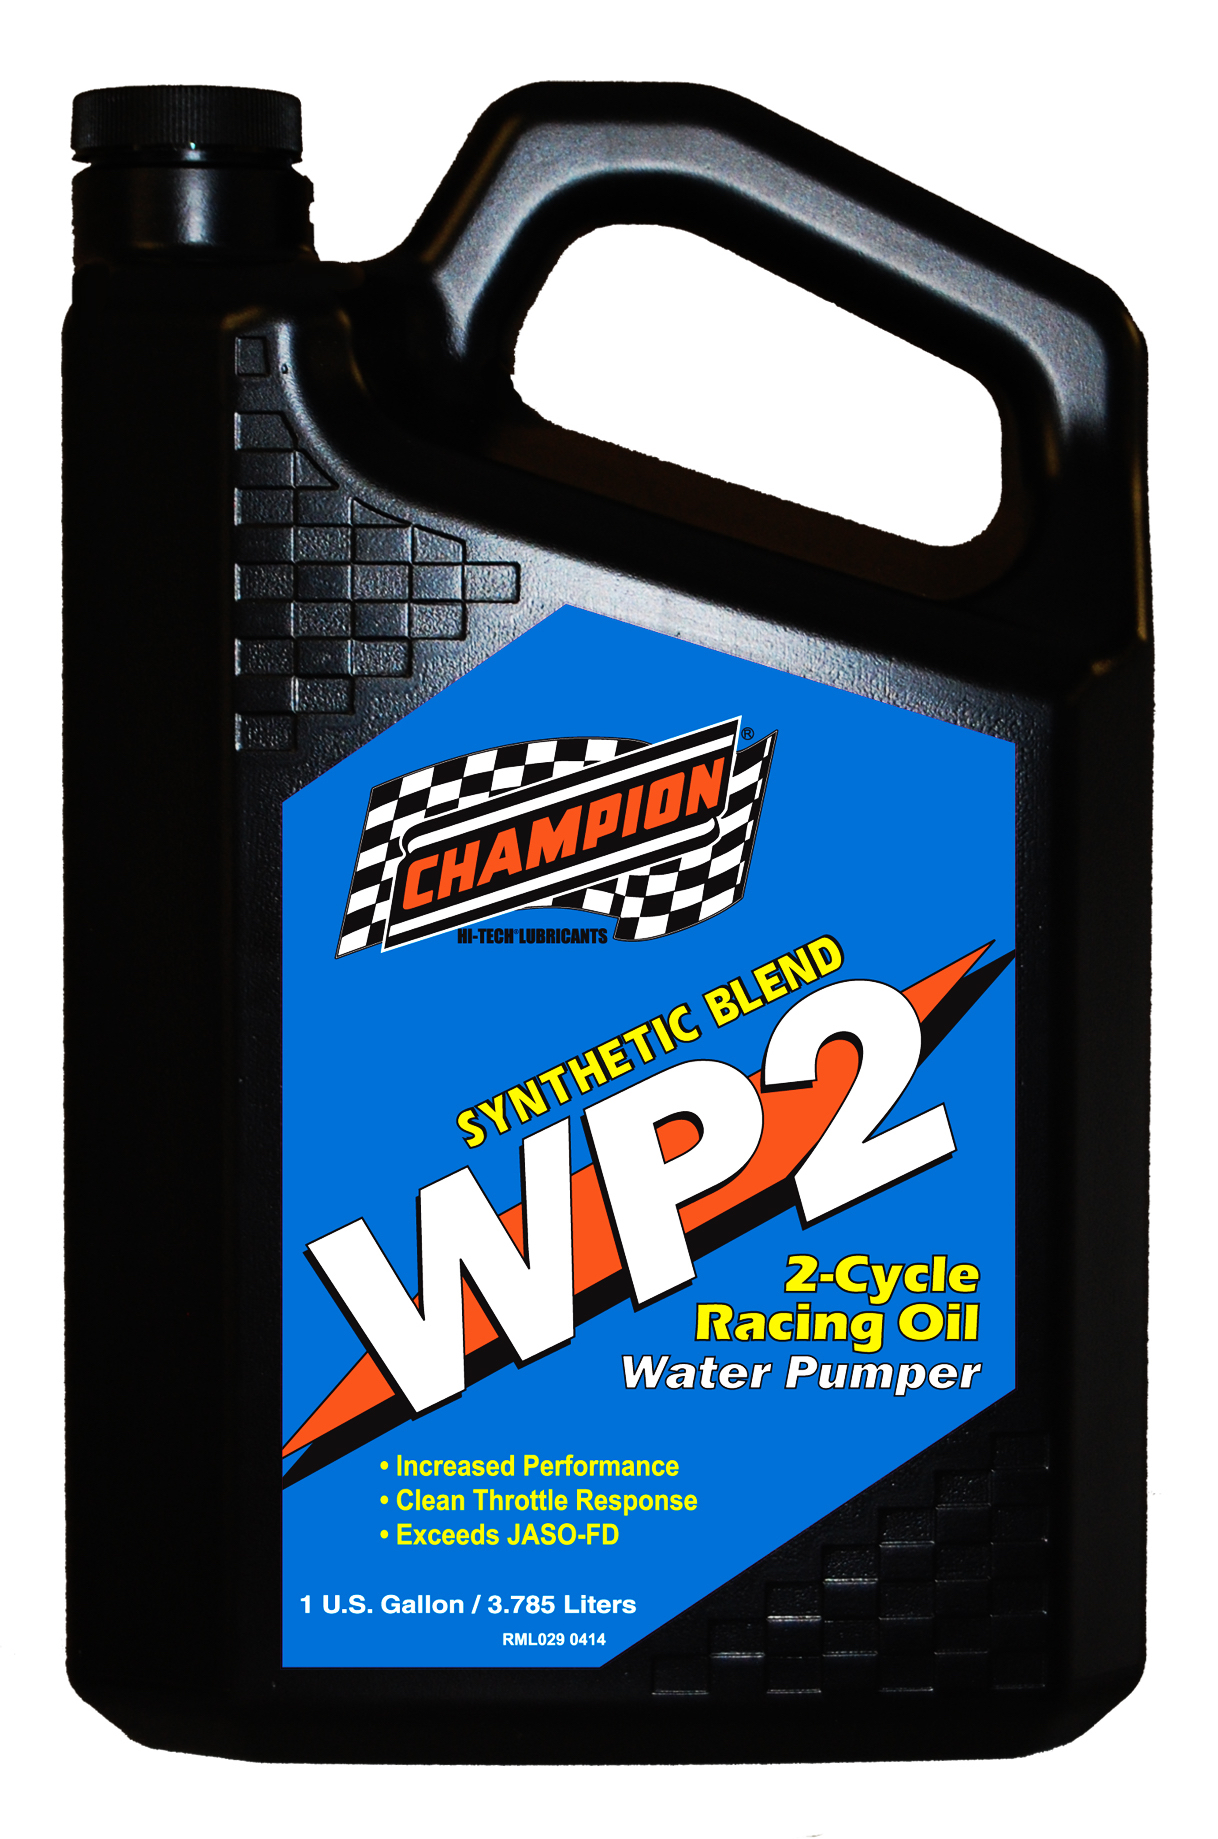 Champion Brands Launches WP2 2-Cycle Racing Oil